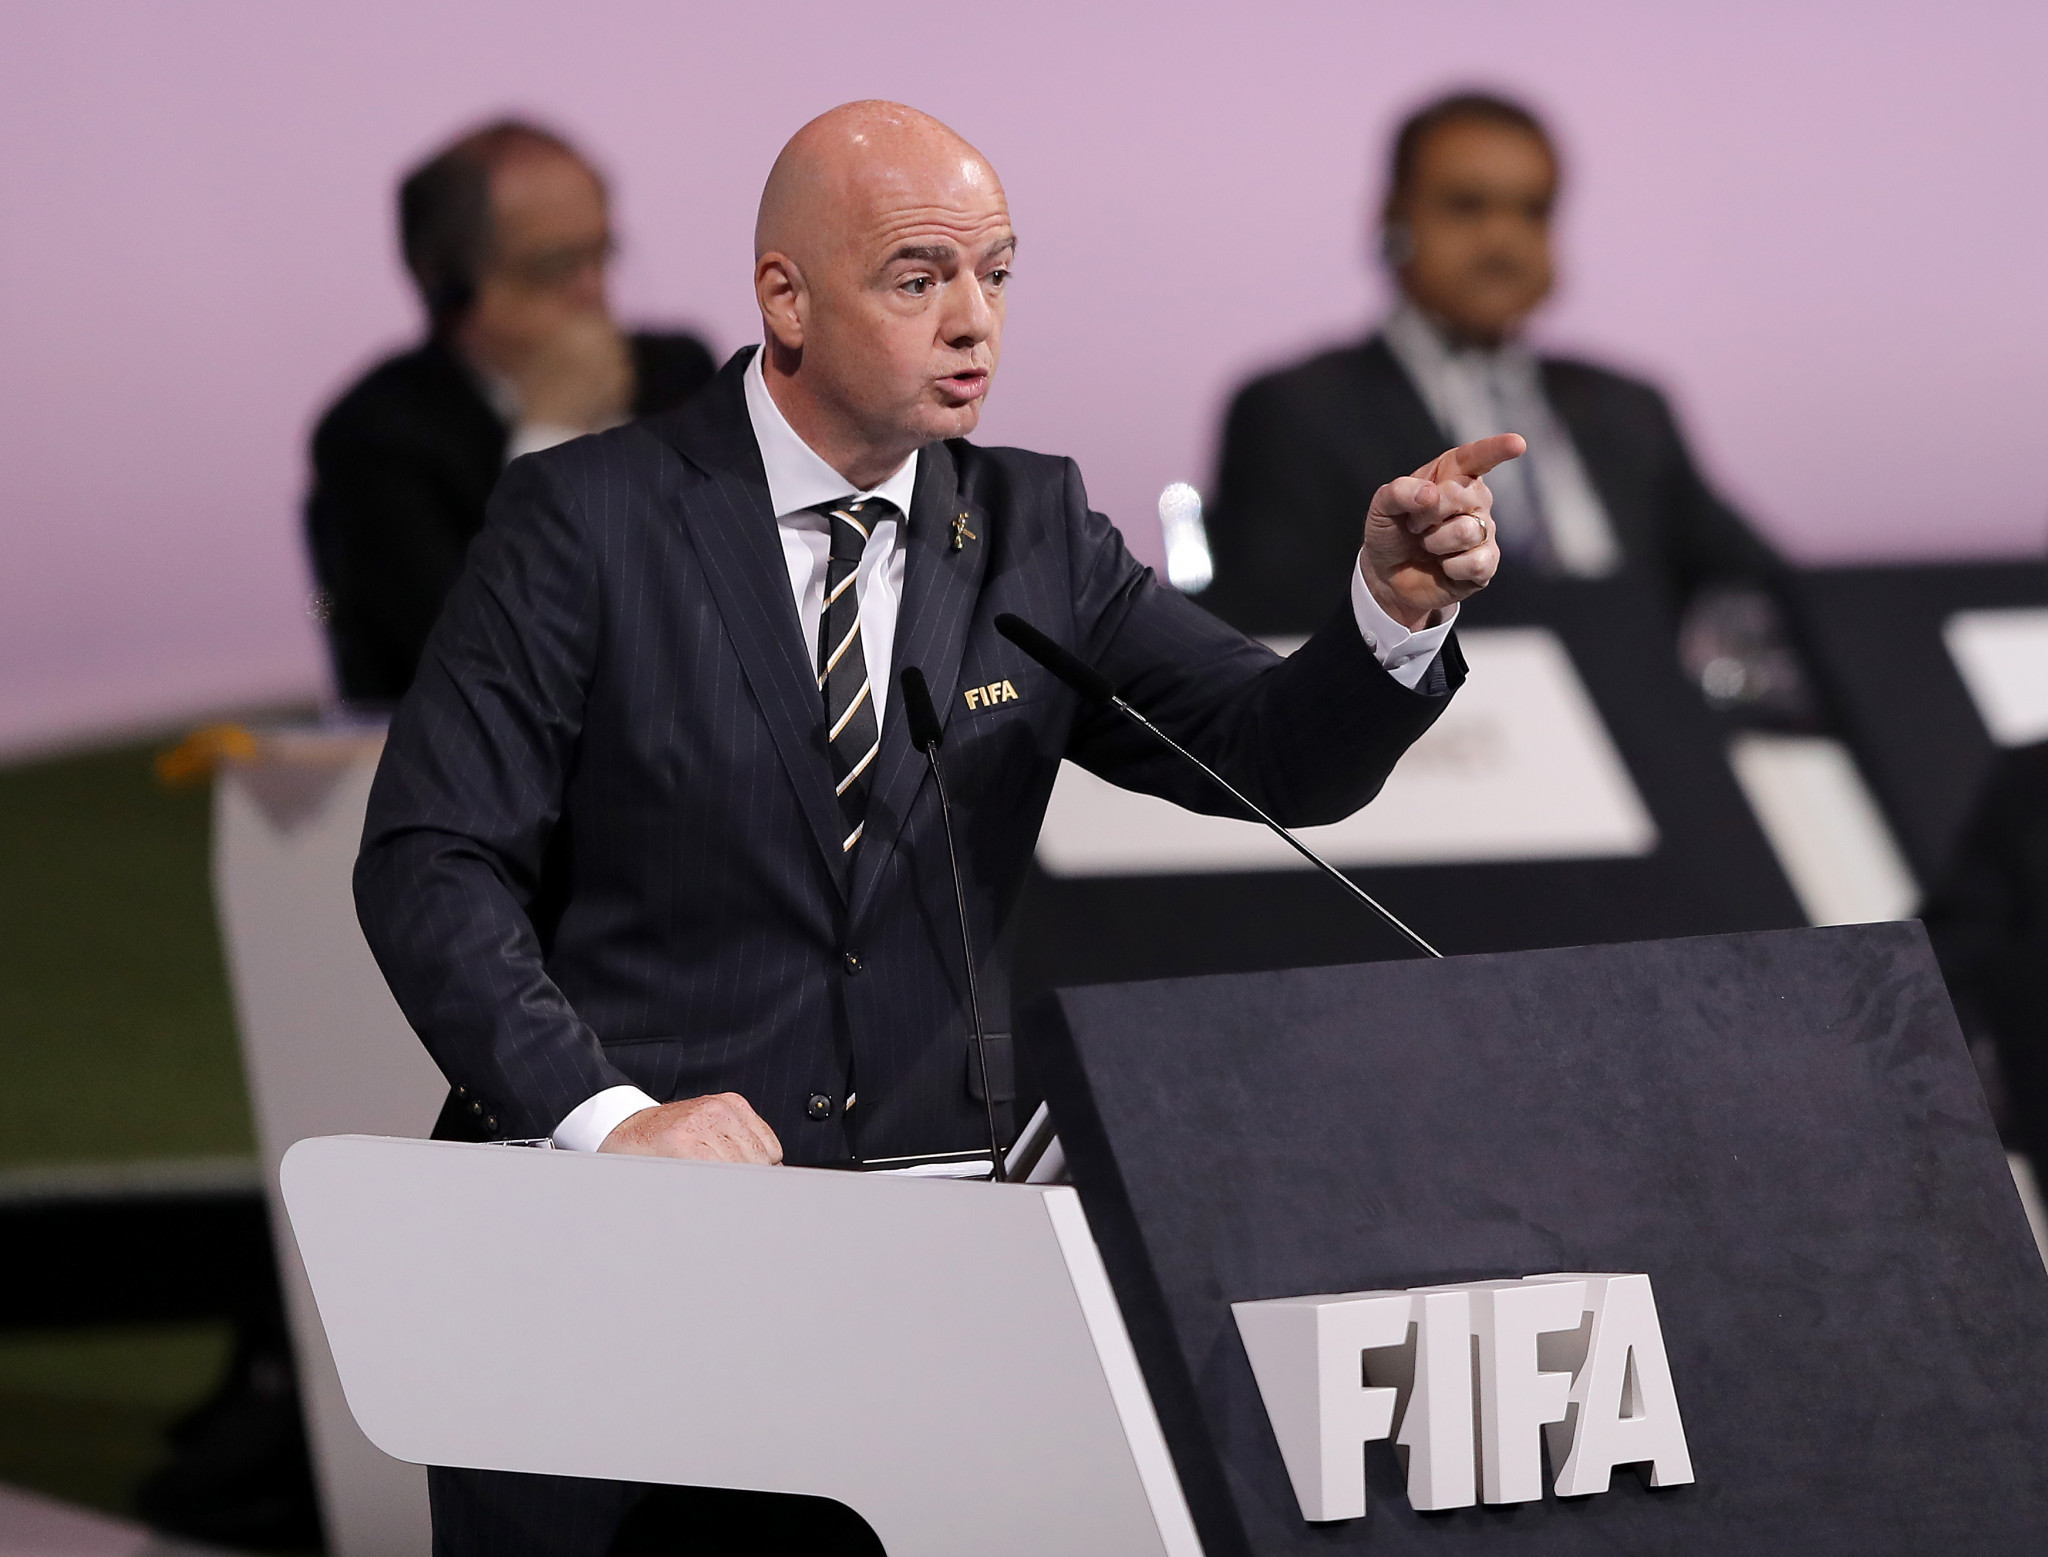 Swiss court rejects FIFA appeal to obtain Infantino criminal investigation files